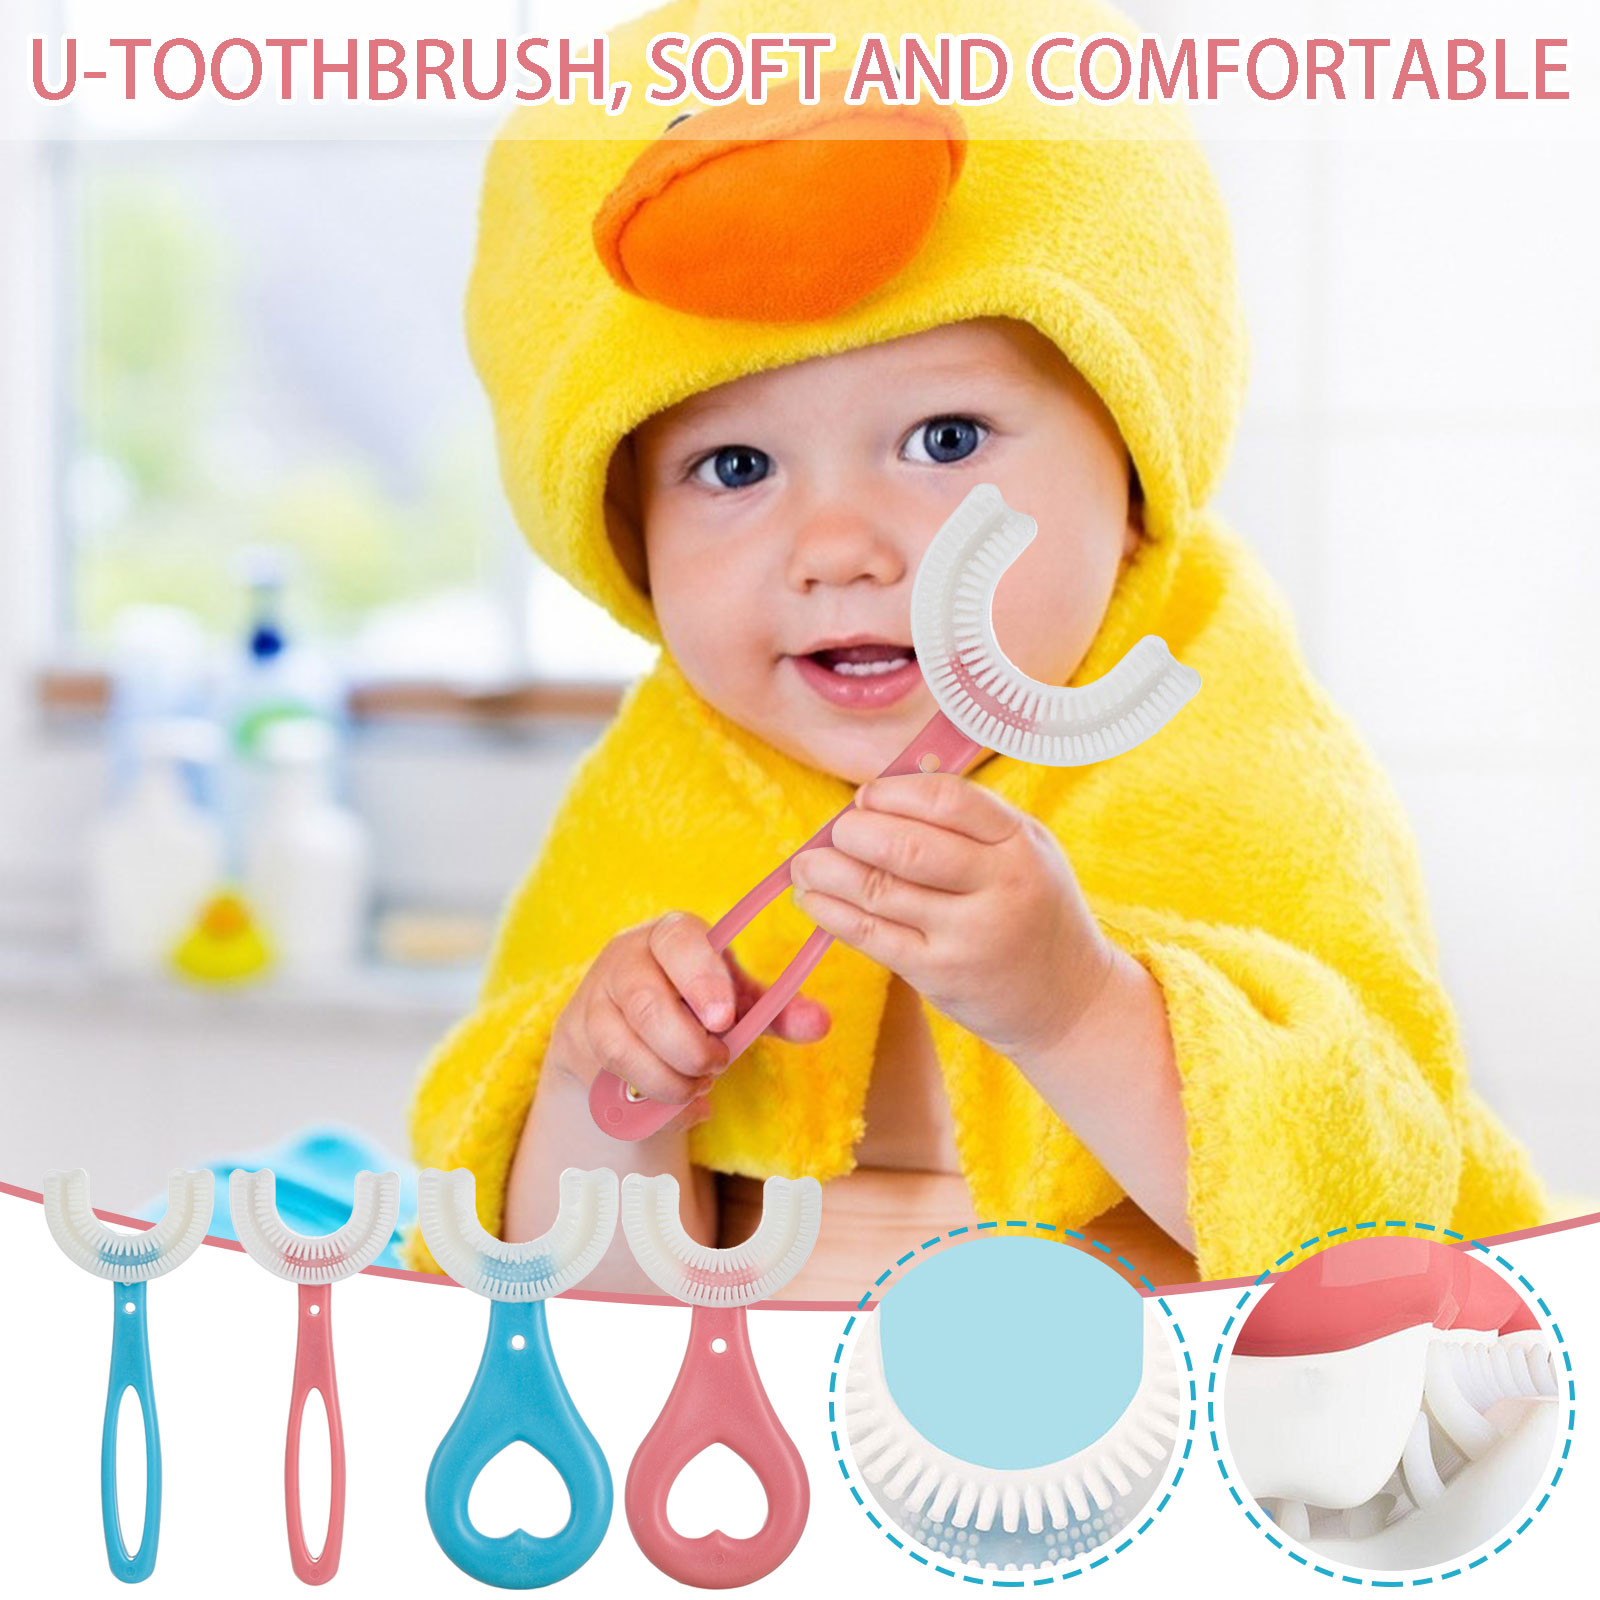 Baby Toothbrush Children 360 Degree U-shaped Toothbrush Teethers Soft Silicone Baby Brush Kids Teeth Oral Care Cleaning 2-12Year